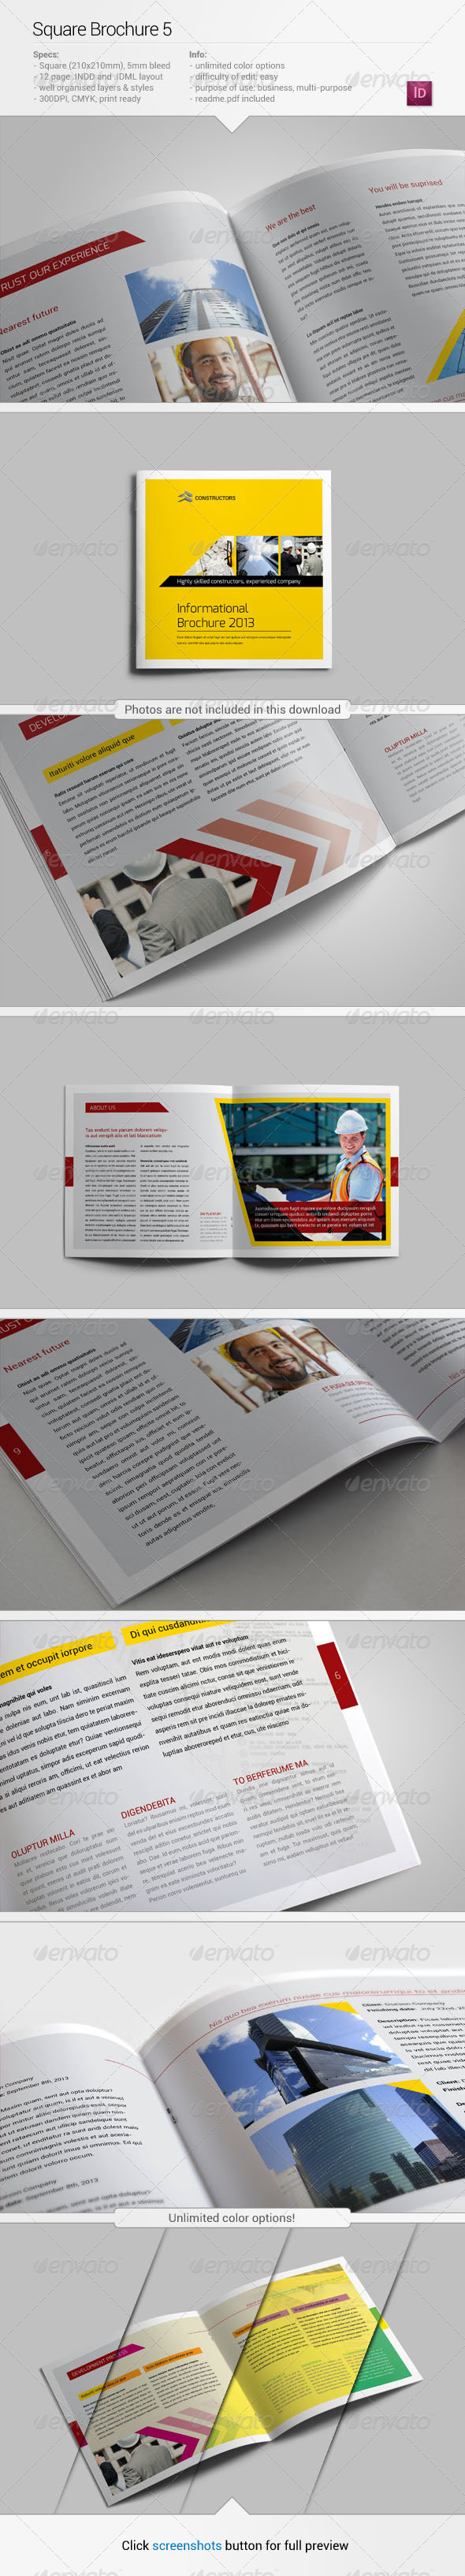 Square Brochure 5 - Corporate Brochures